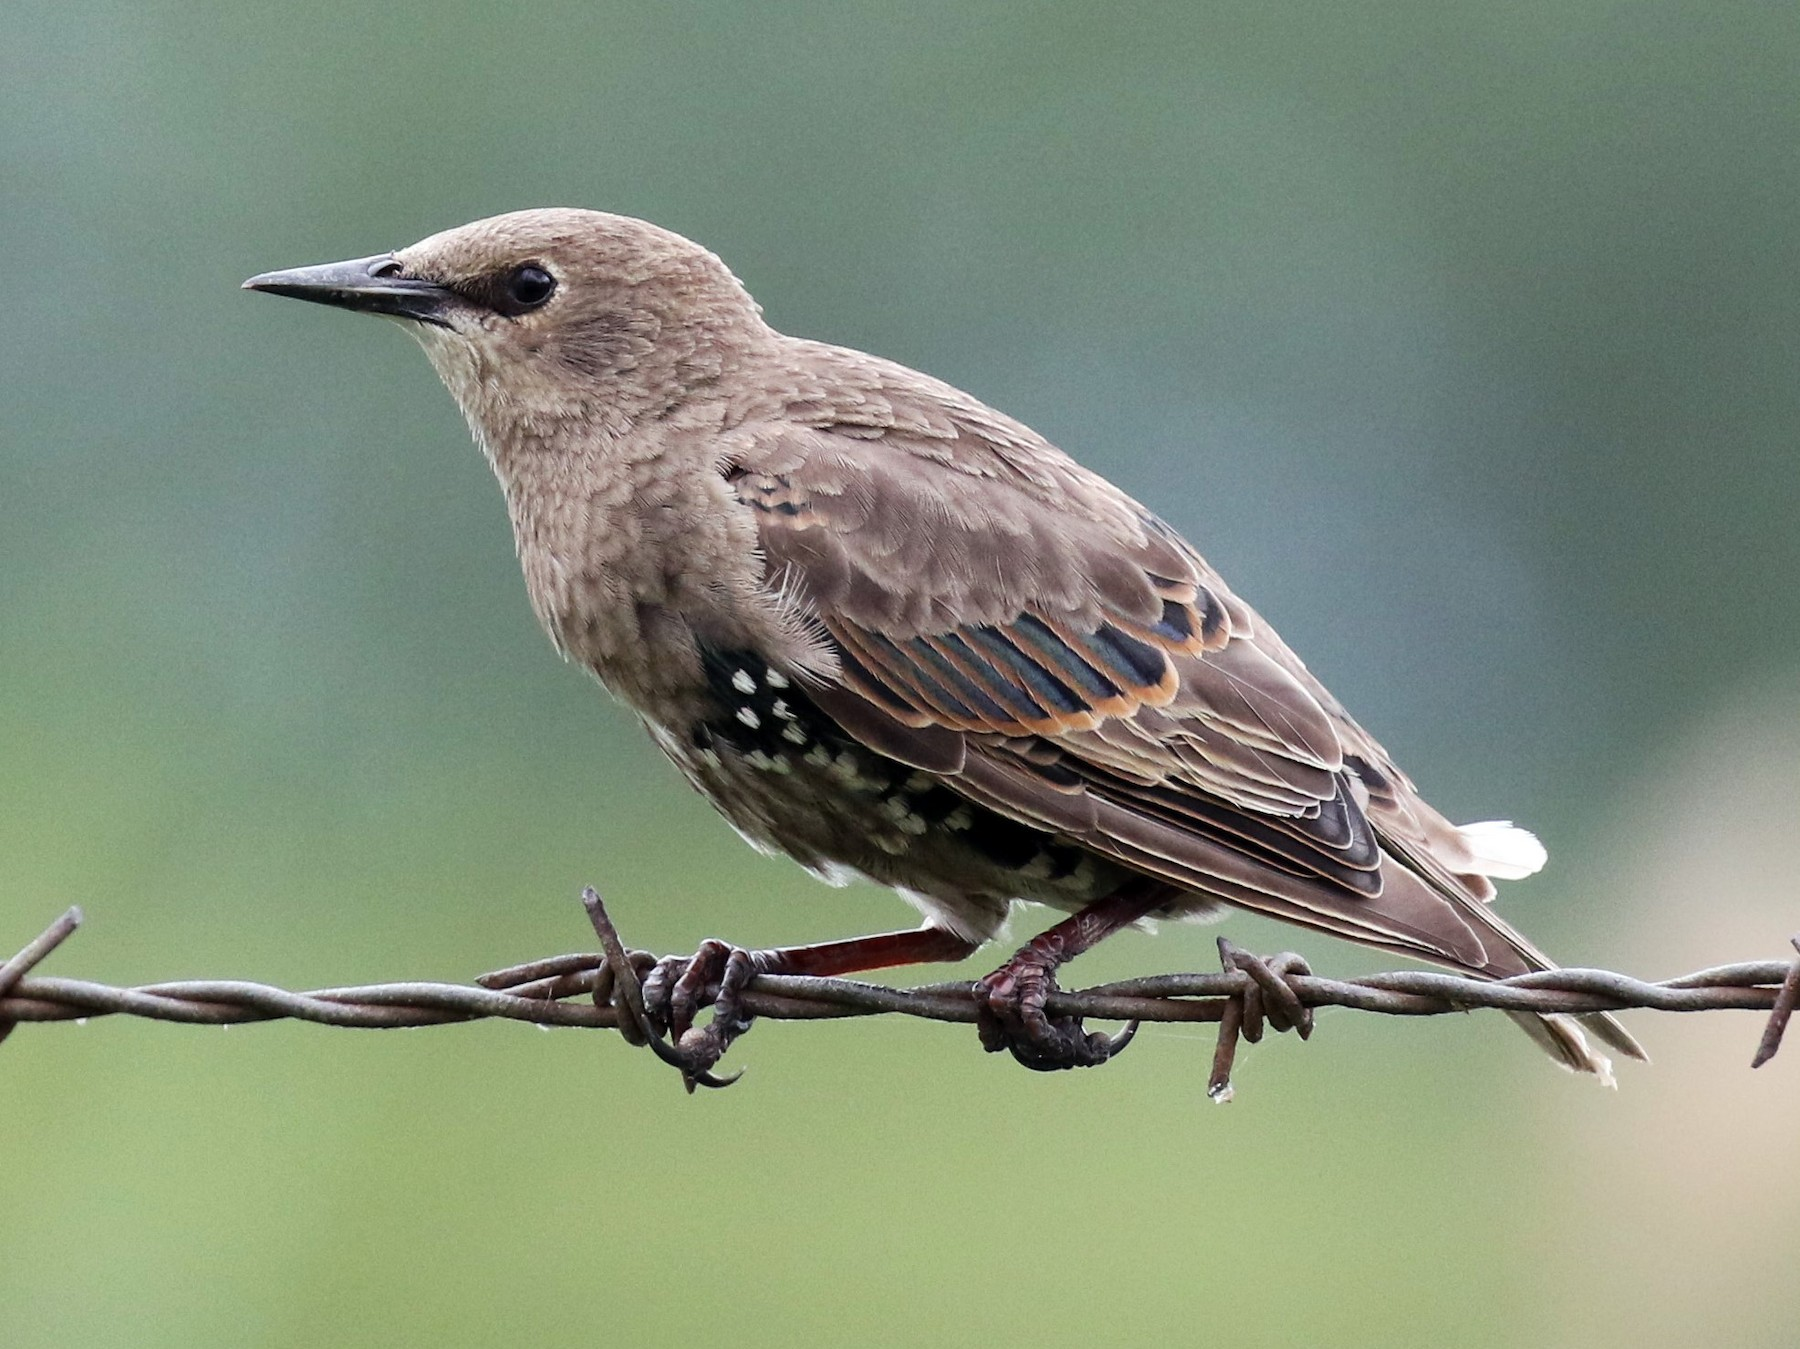 European Starling - Walter Marcisz